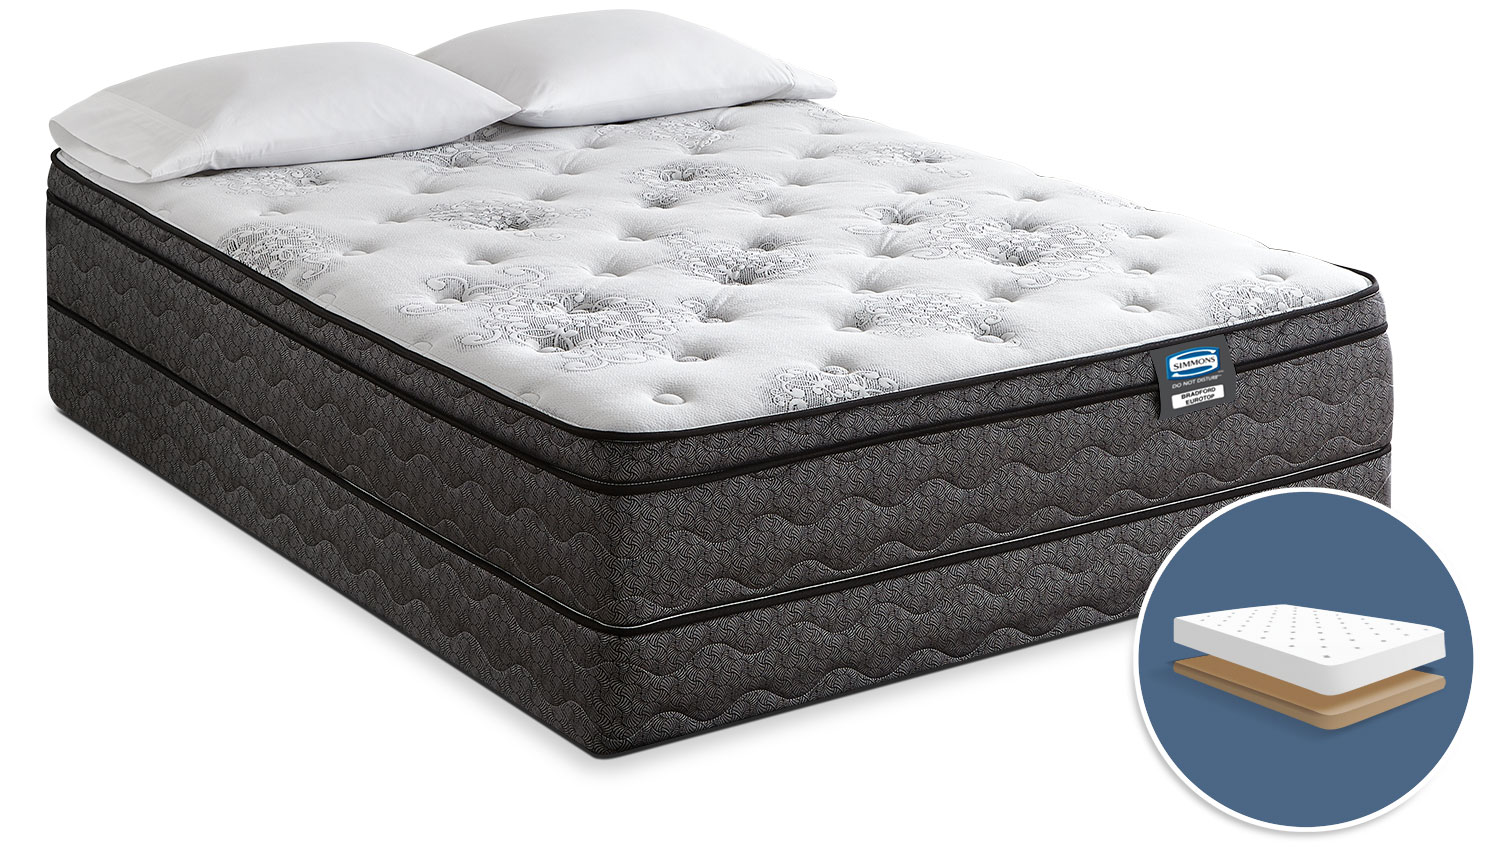 Simmons Do Not Disturb Bradford Euro-Top Firm Low-Profile Queen Mattress Set